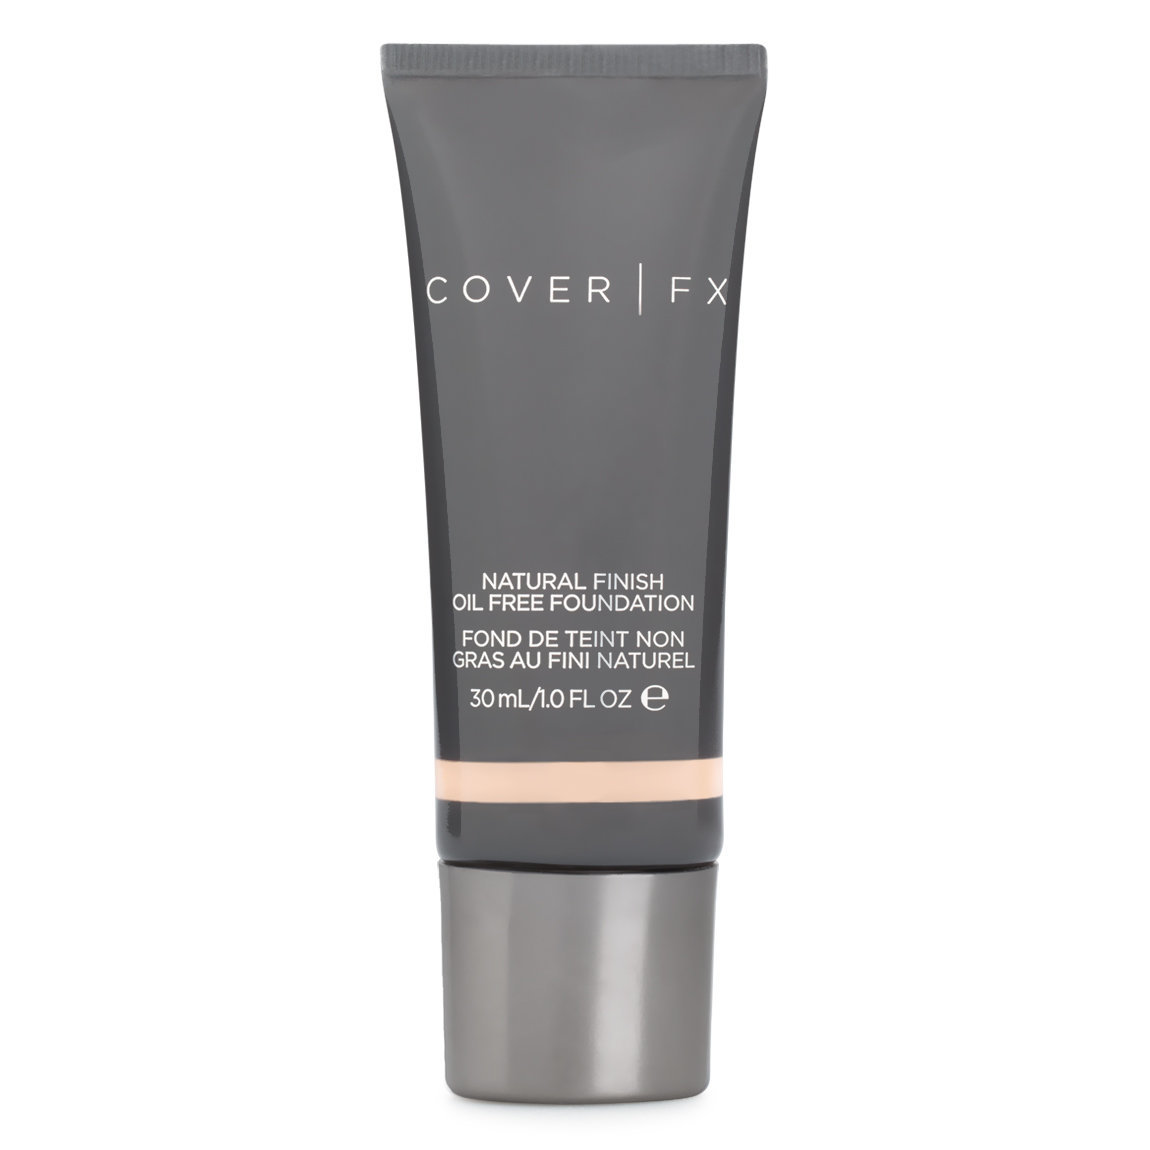 COVER | FX Natural Finish Oil Free Foundation N0